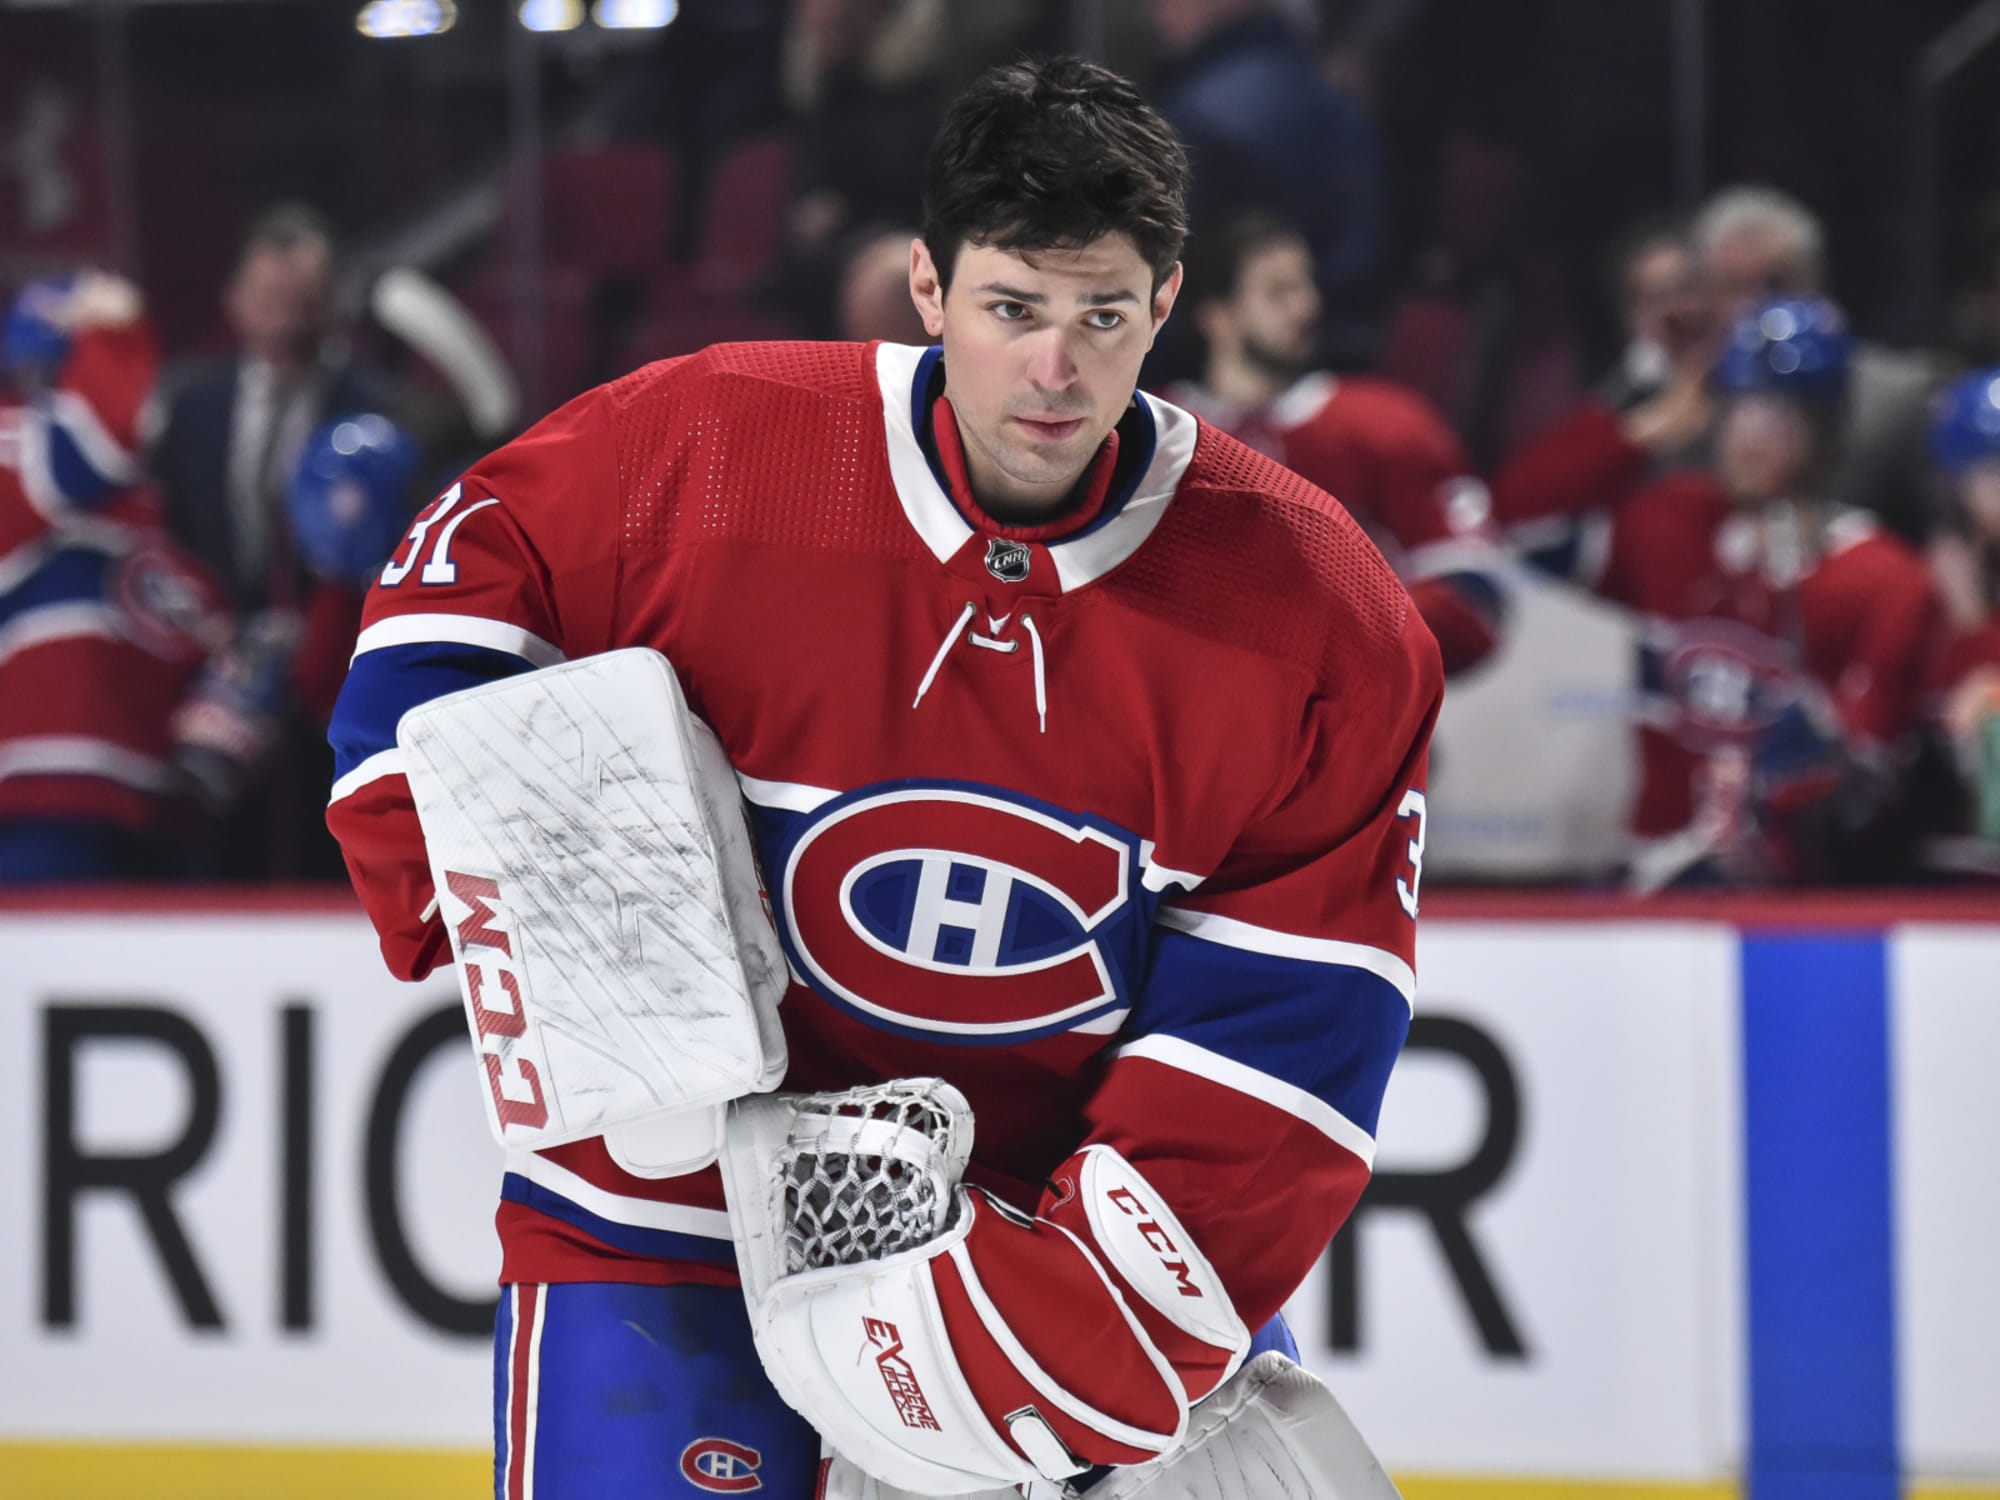 Canadiens Carey Price Once Again Helping Kids In Need